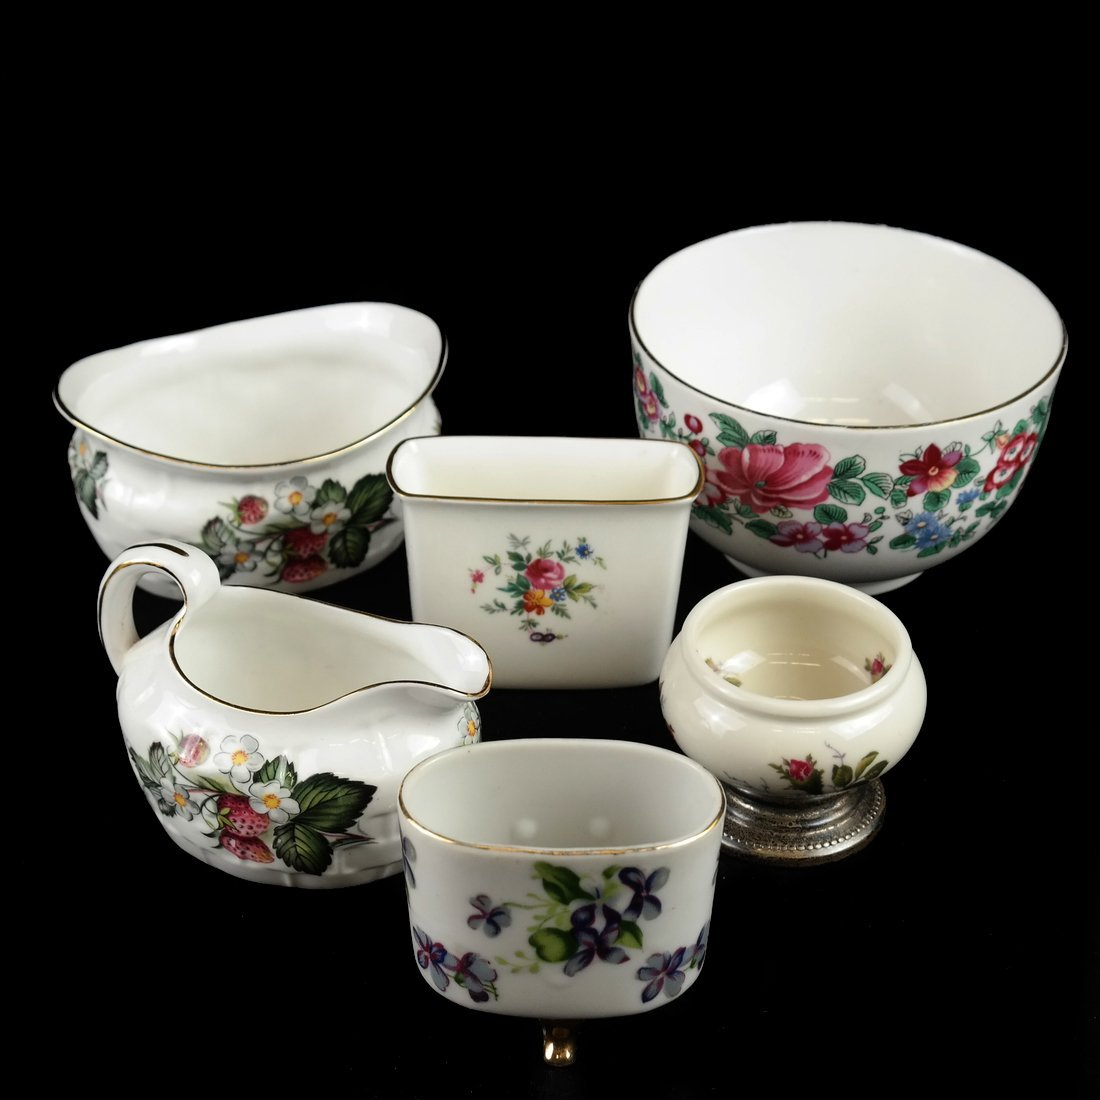 18 Assorted Porcelain Articles - 10